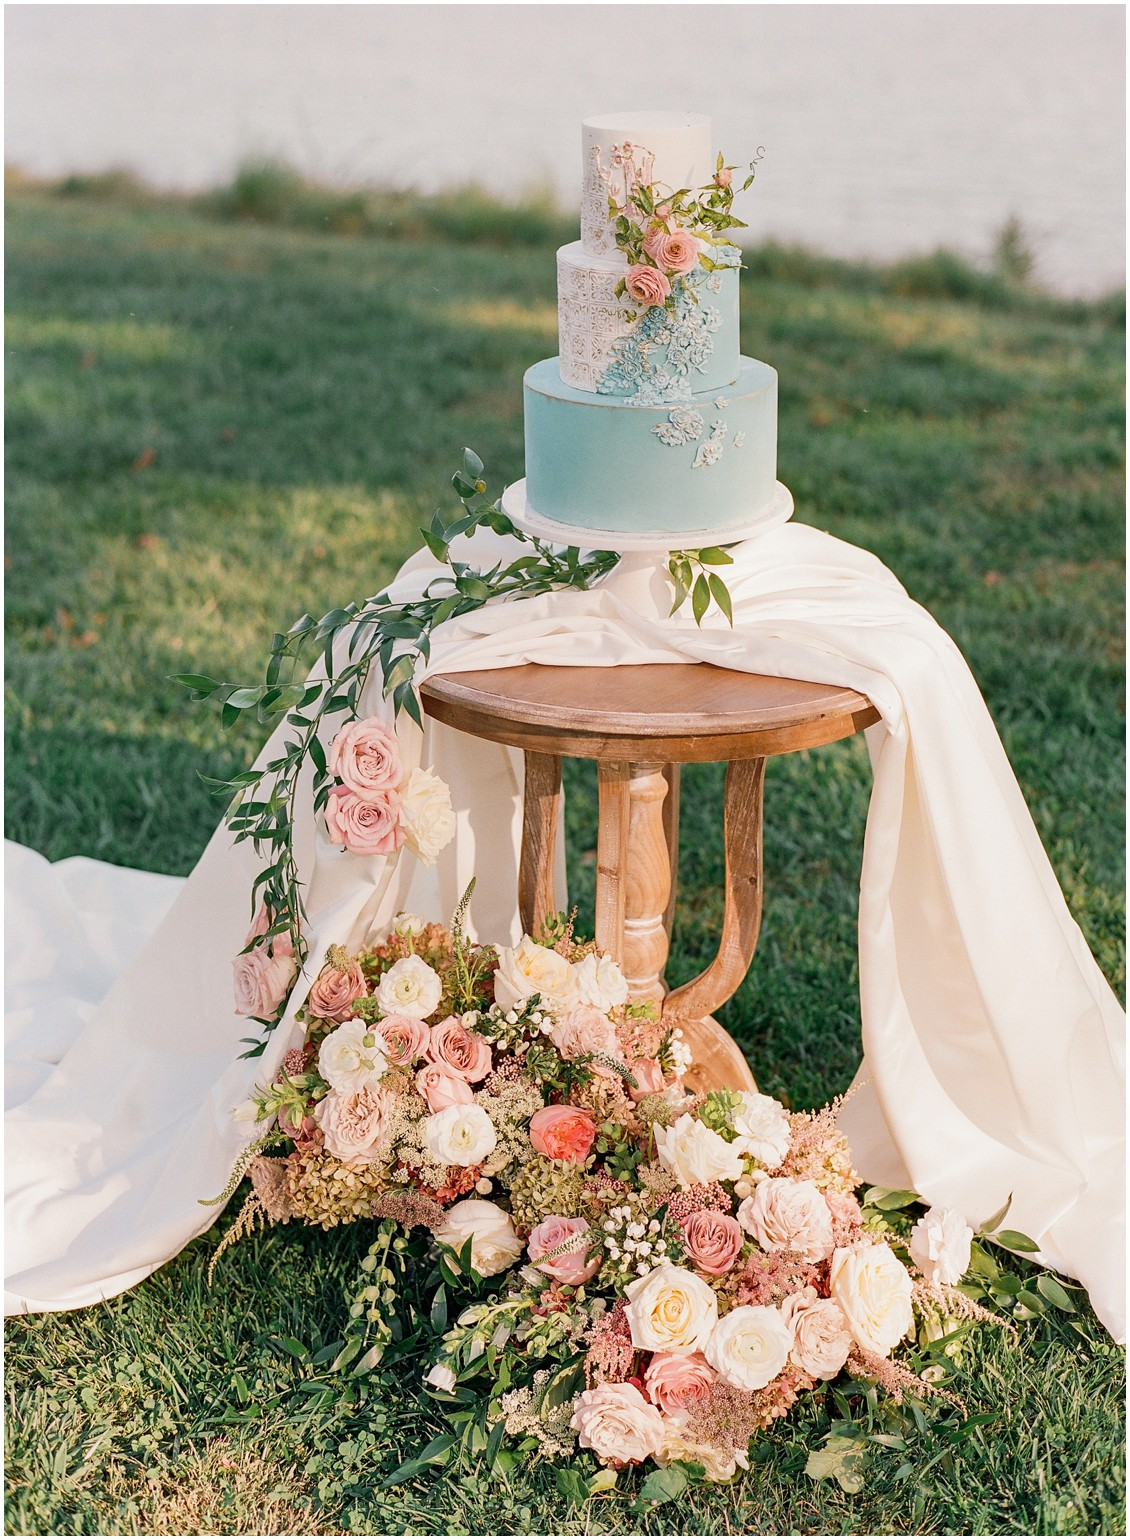 Dazzling and daydreaming styled wedding shoot soft romantic color palette wedding details | My Eastern Shore Wedding